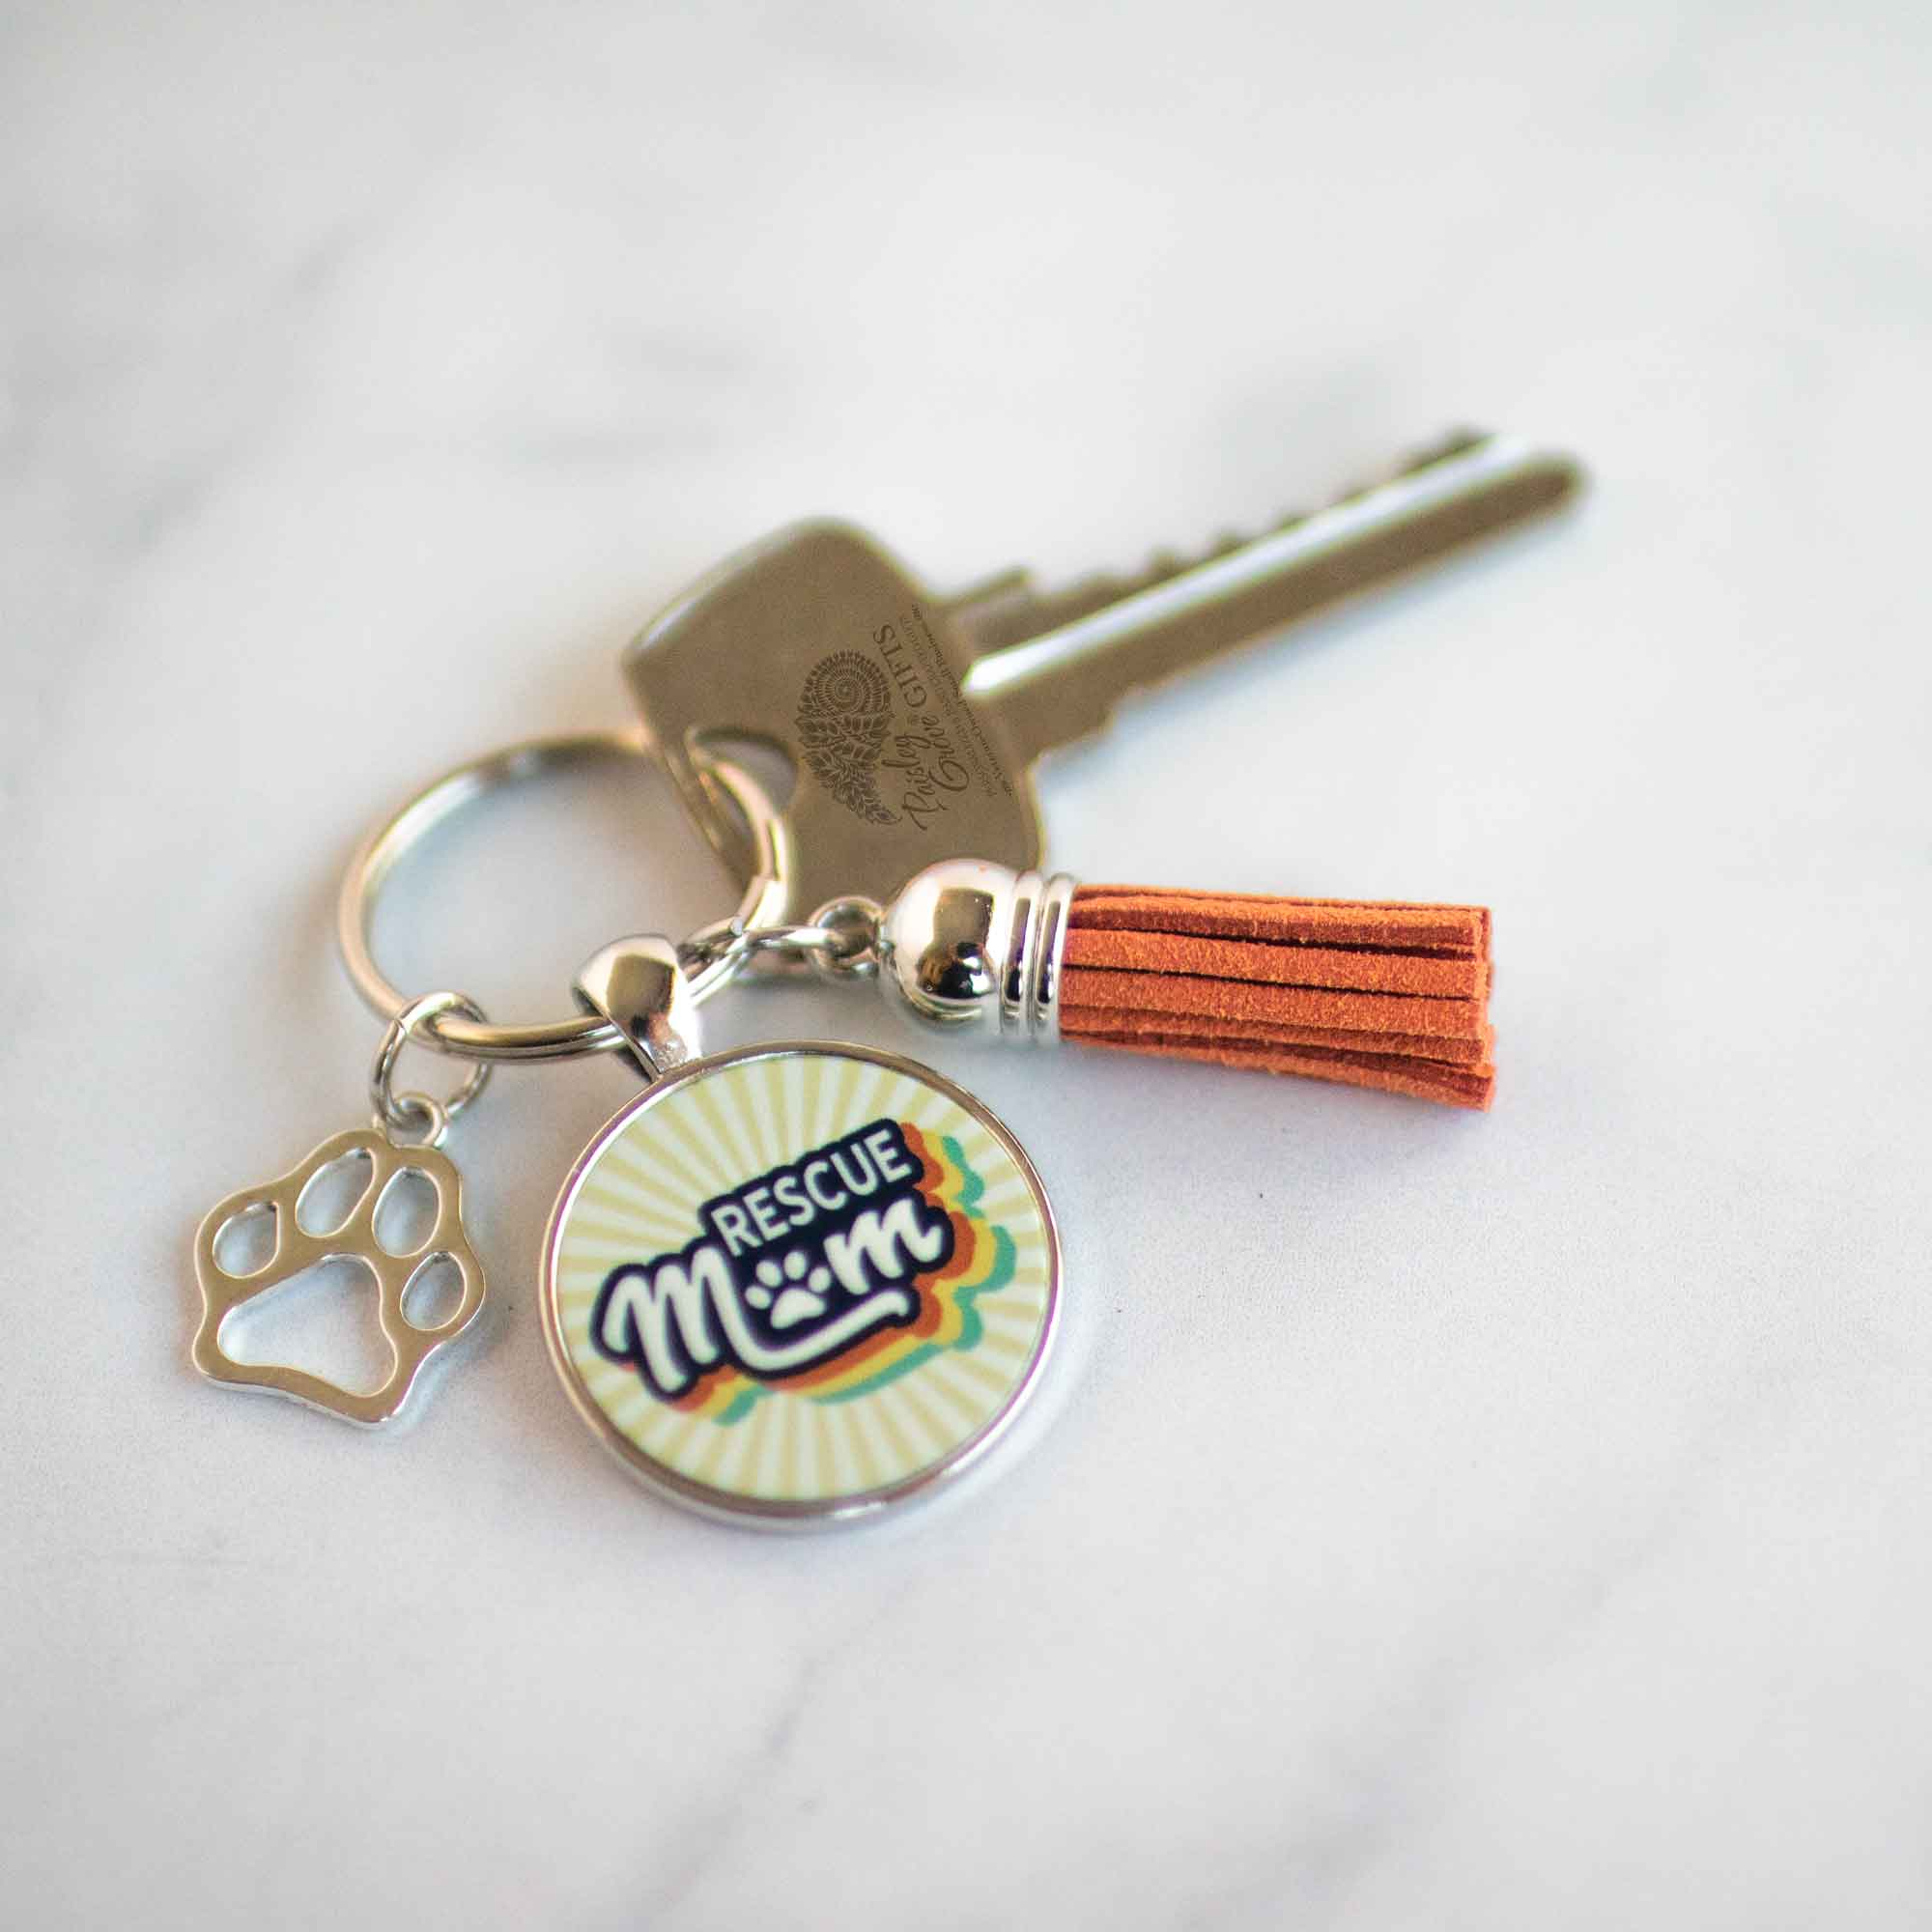 CopyrightPaisleyGroveGIFTS S009a Cat Rescue Dog Rescue Mom Keychain with Retro Vintage 70s 80s style with a Key